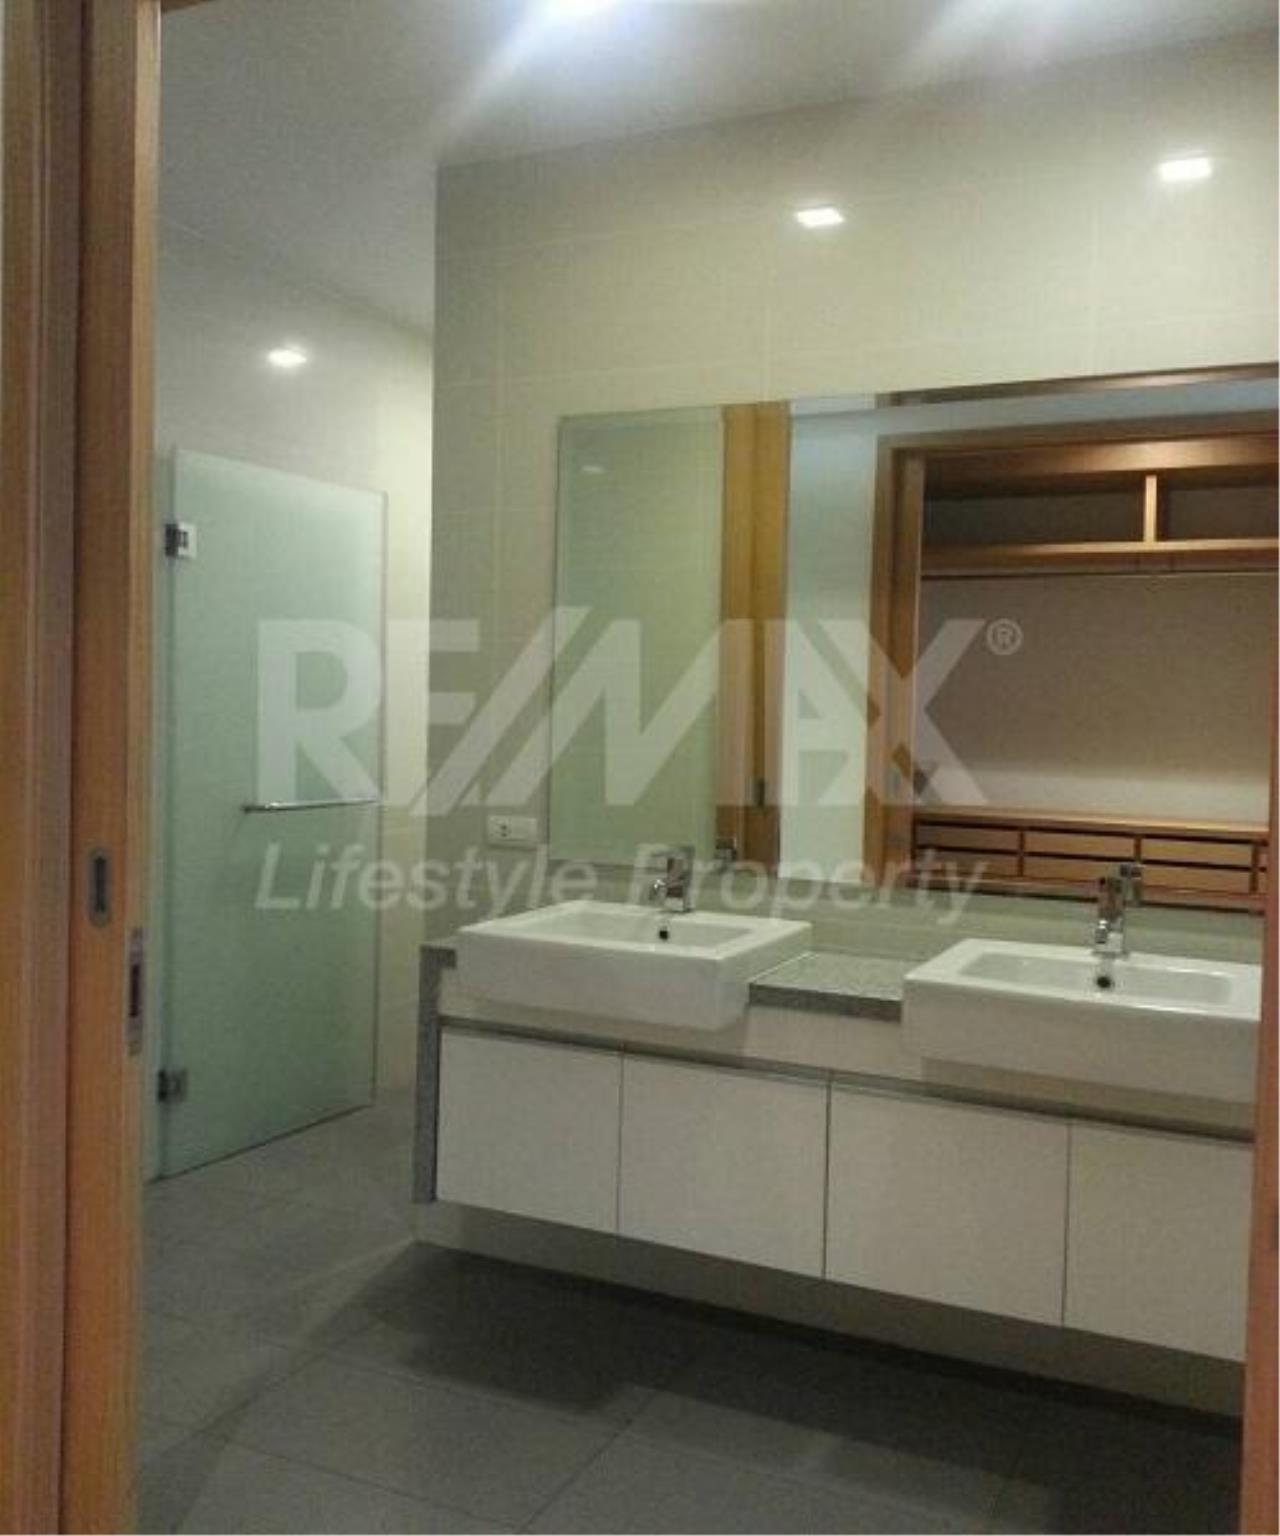 RE/MAX LifeStyle Property Agency's Millennium Residence 6